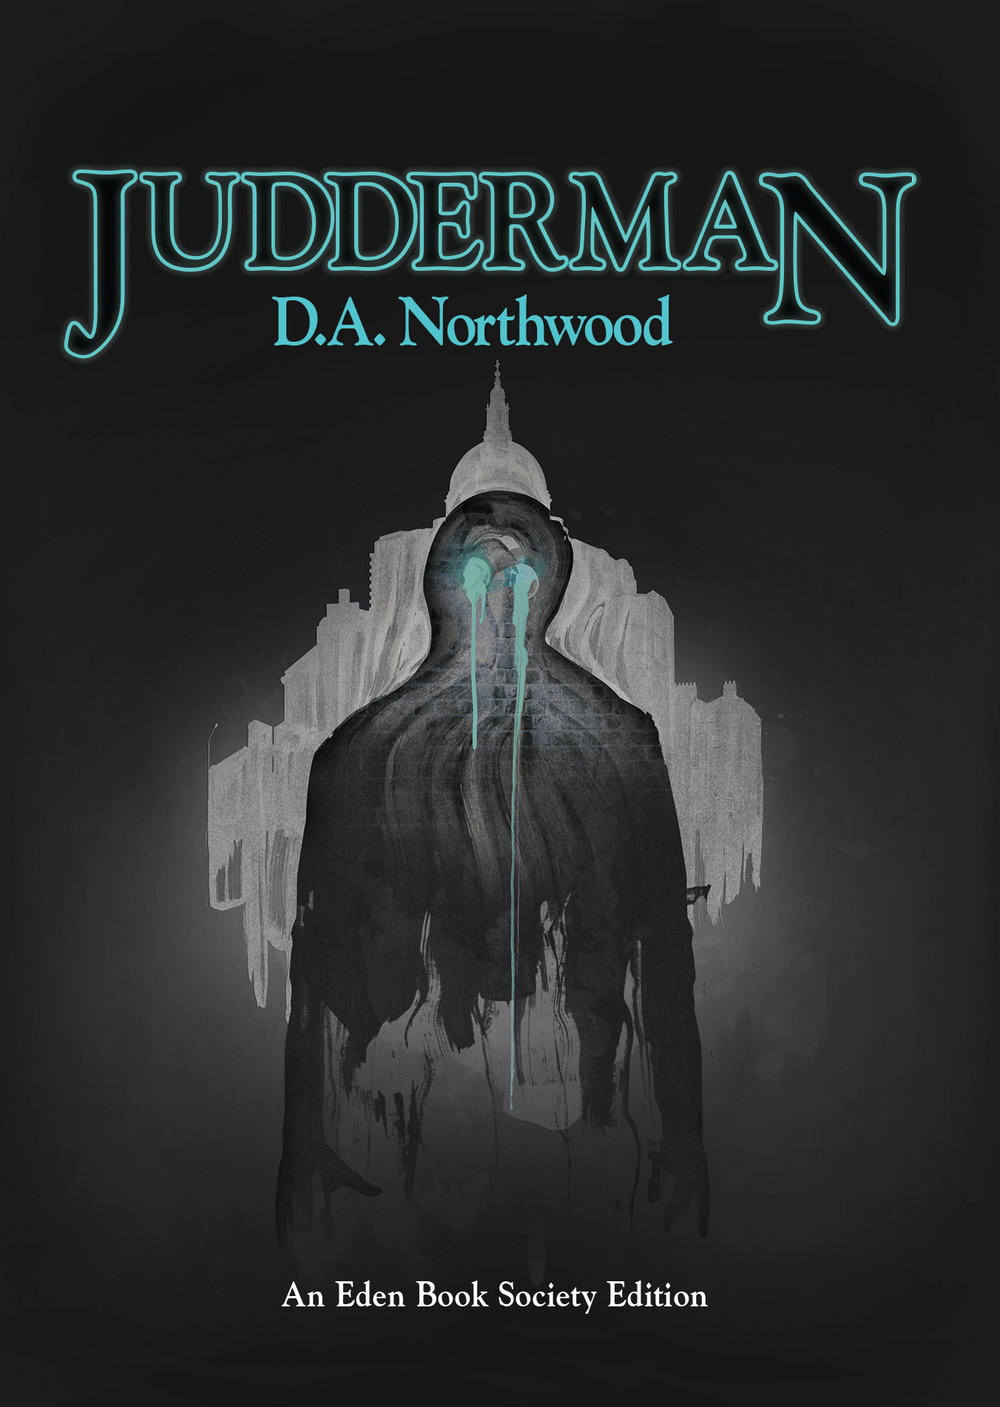 The Dead Ink reissue of Northwood's  Judderman